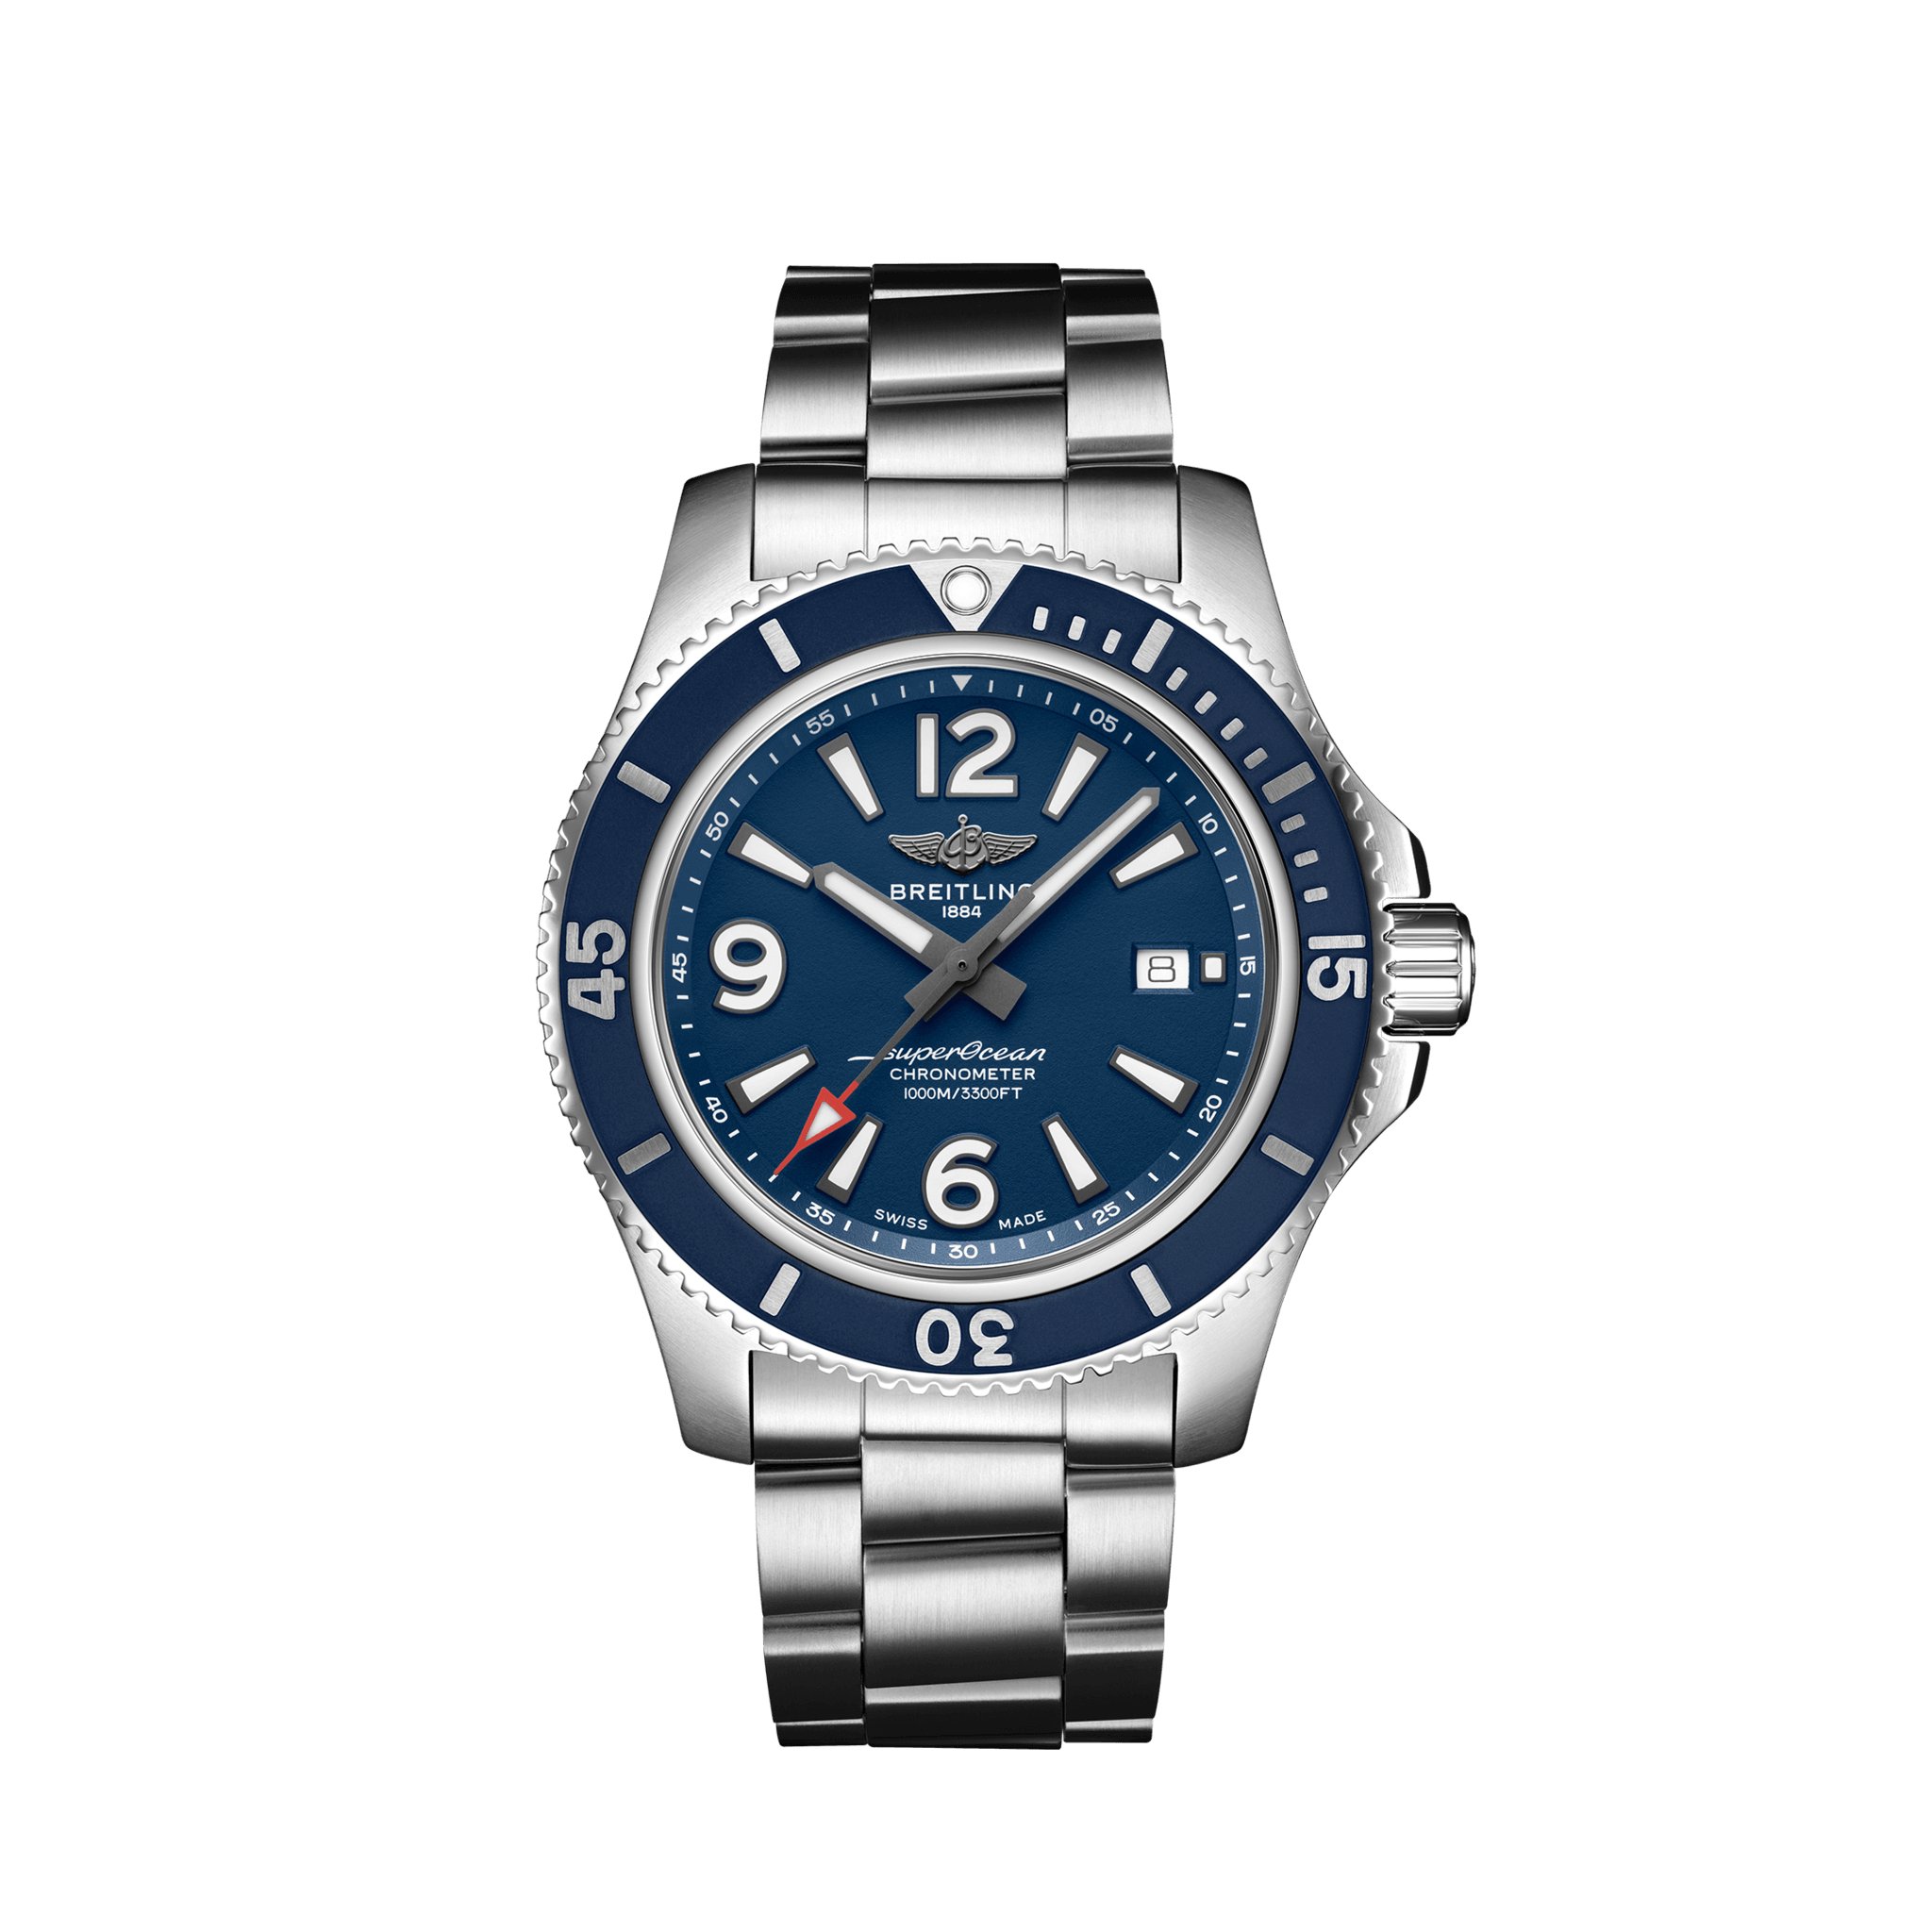 SUPEROCEAN, SPORTS WATCHES